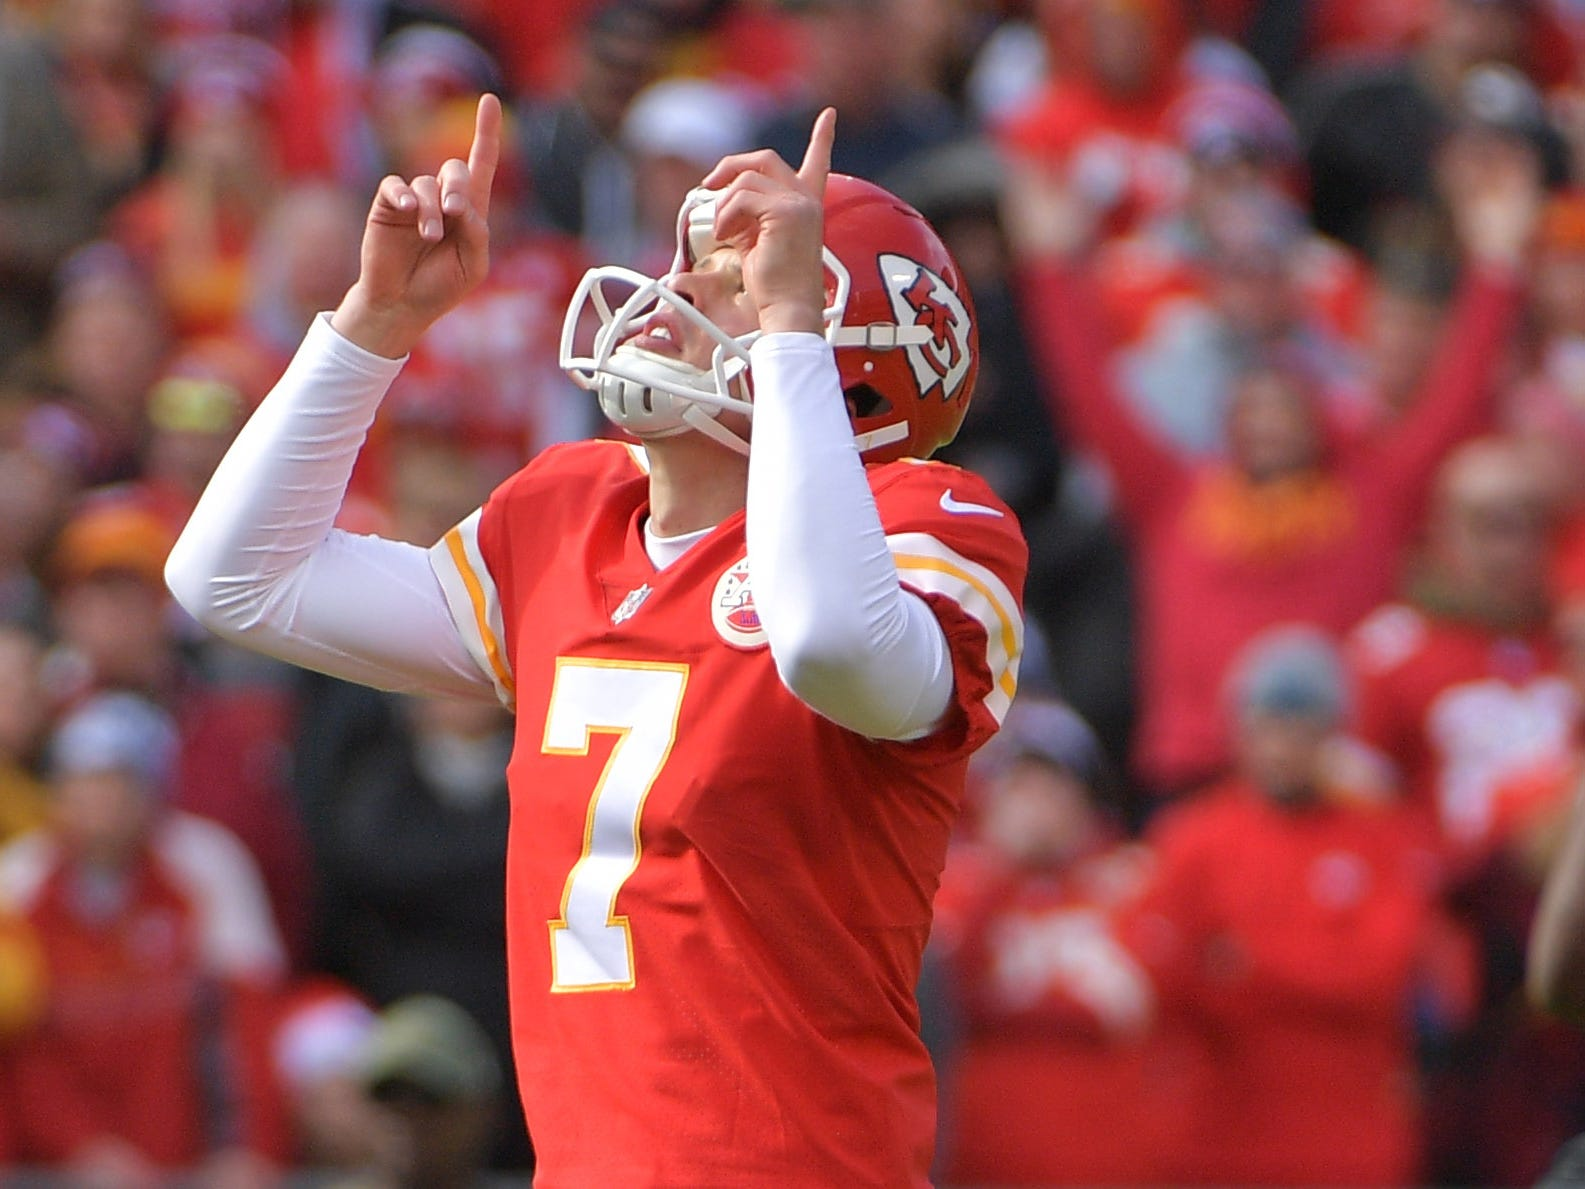 Chiefs kicker Harrison Butker celebrates after kicking a field goal.